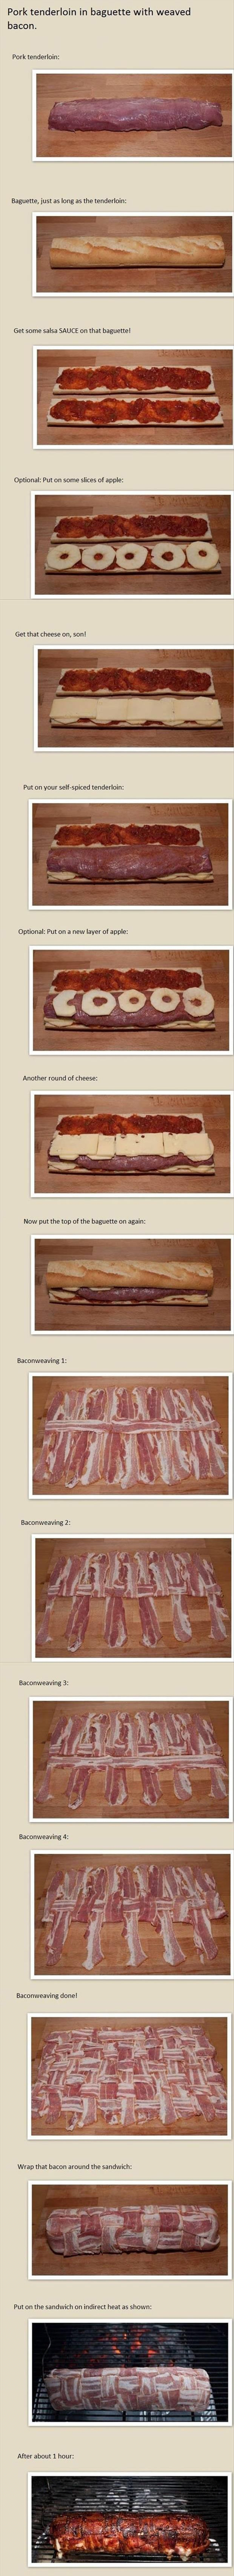 Awesome Food Ideas - iDidAFunny